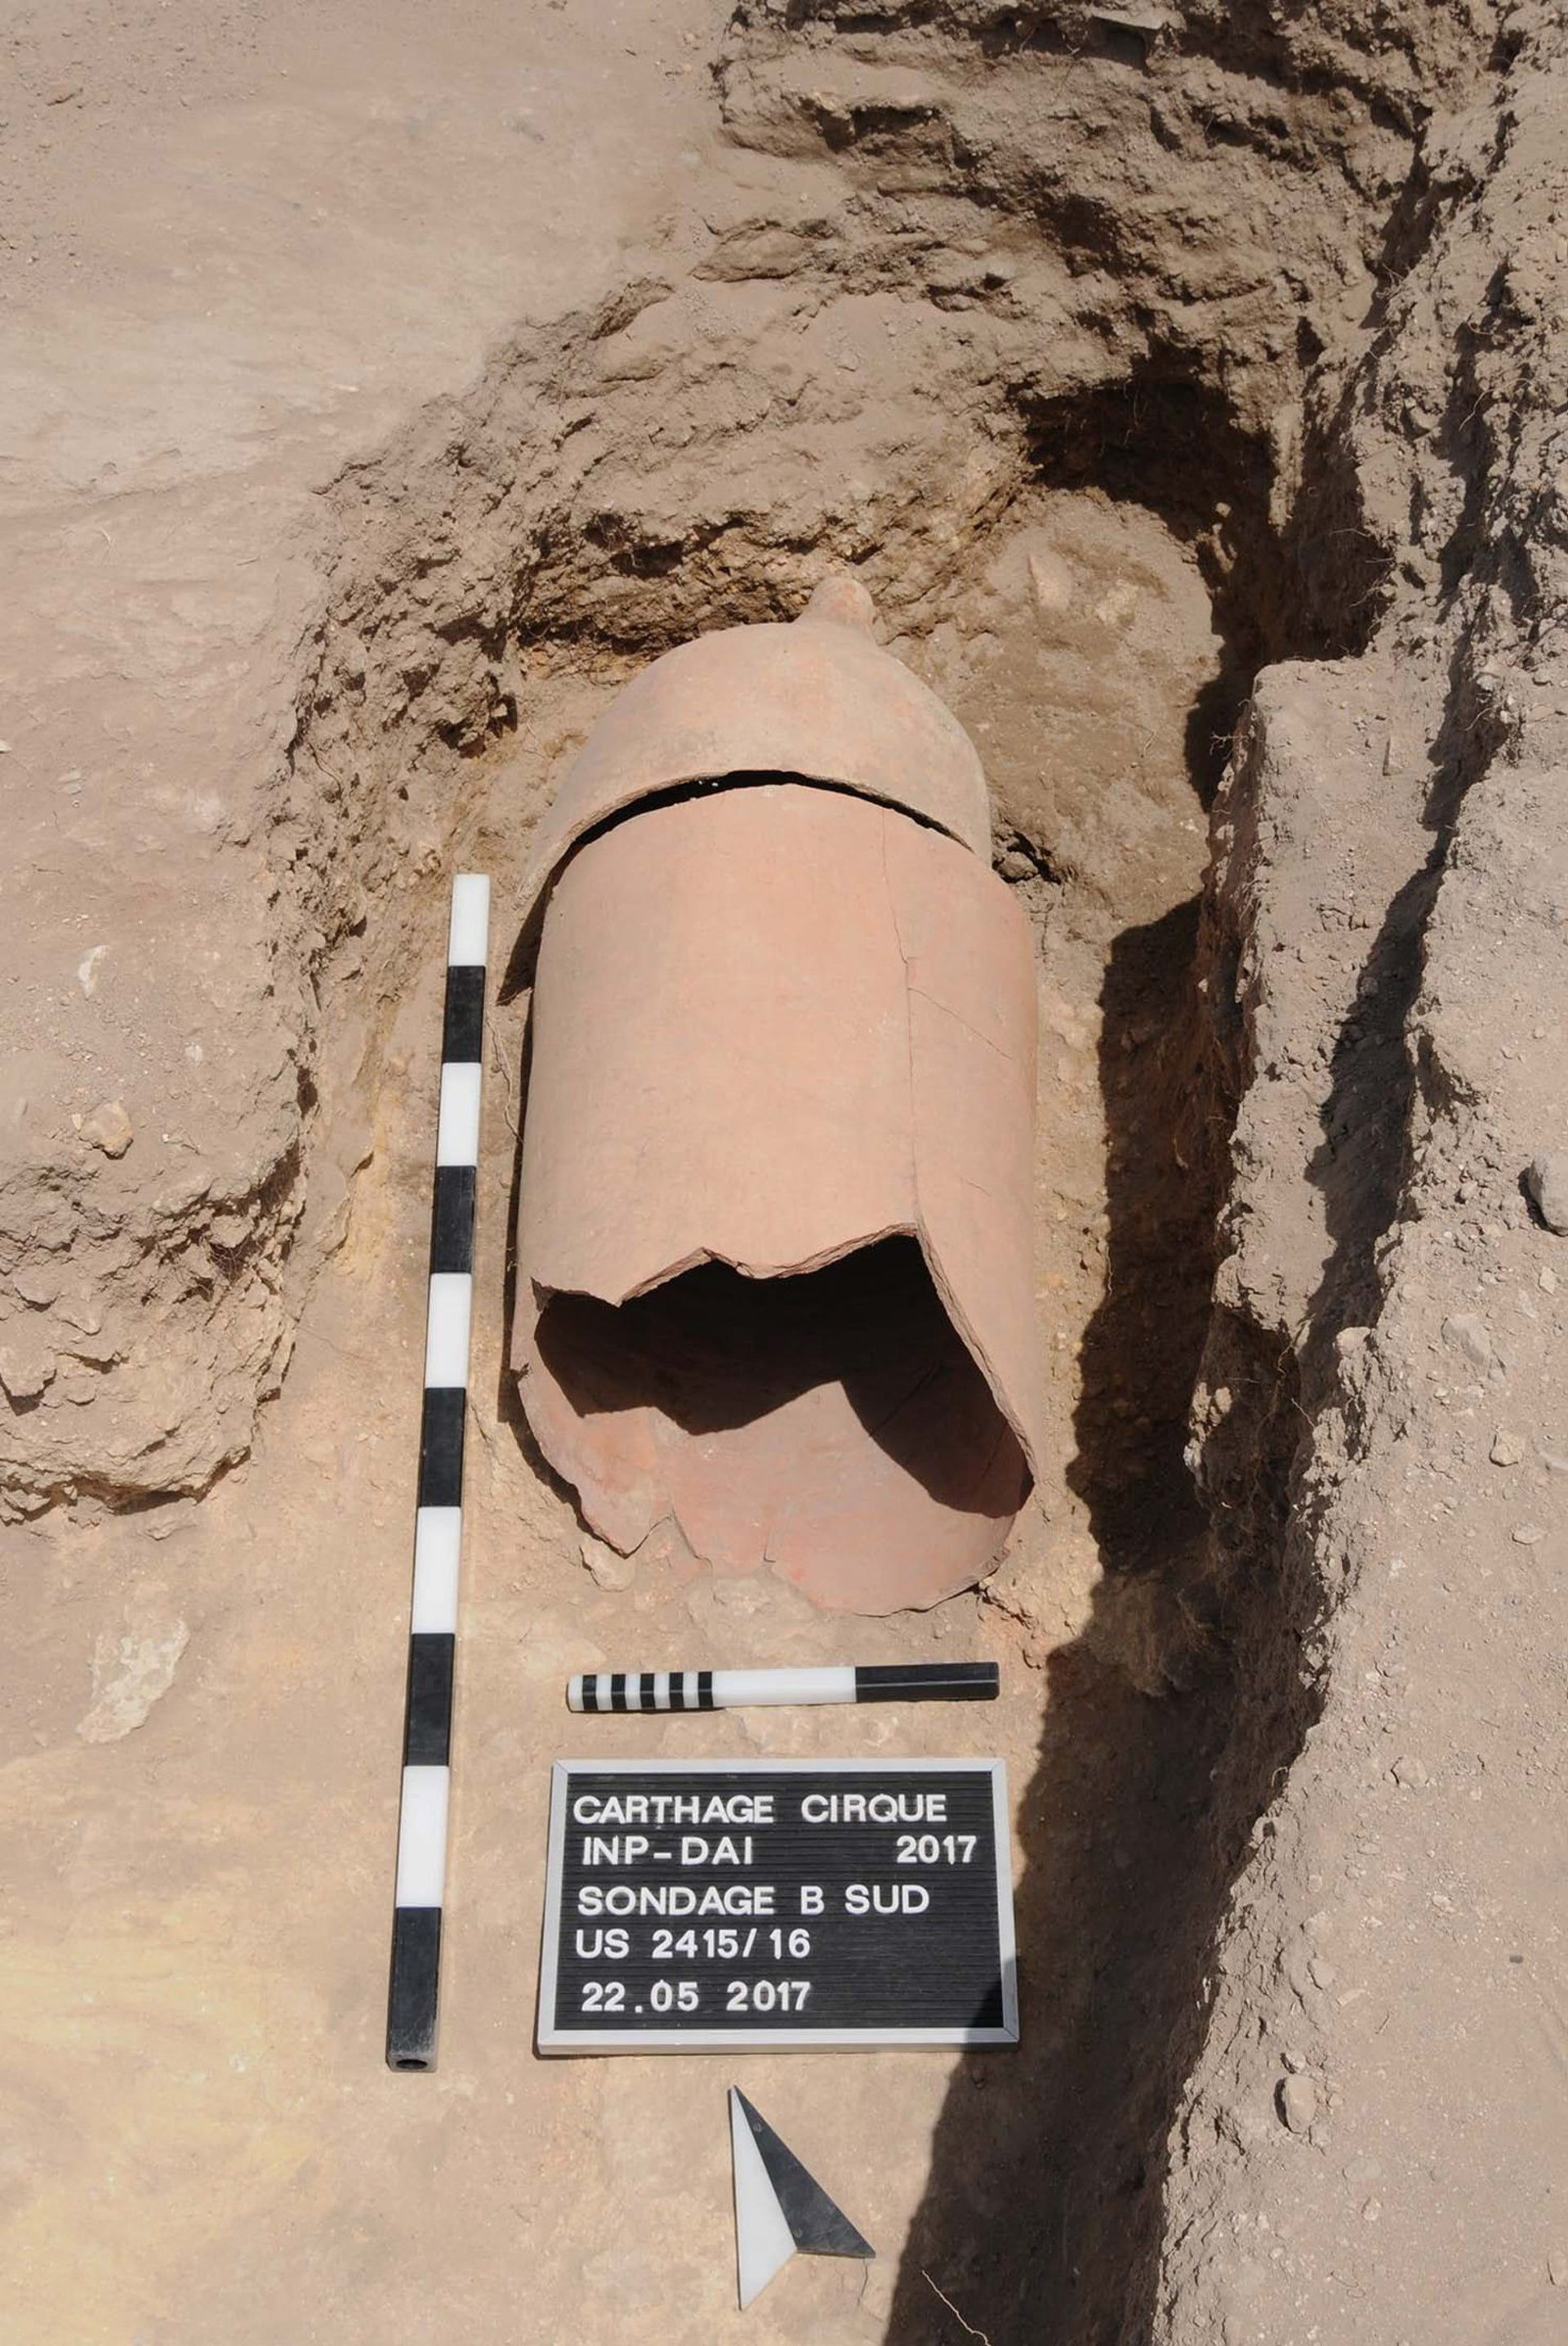 The funerary amphora excavated in its original placing, before removal: Carthage, a burial in the racetrack.